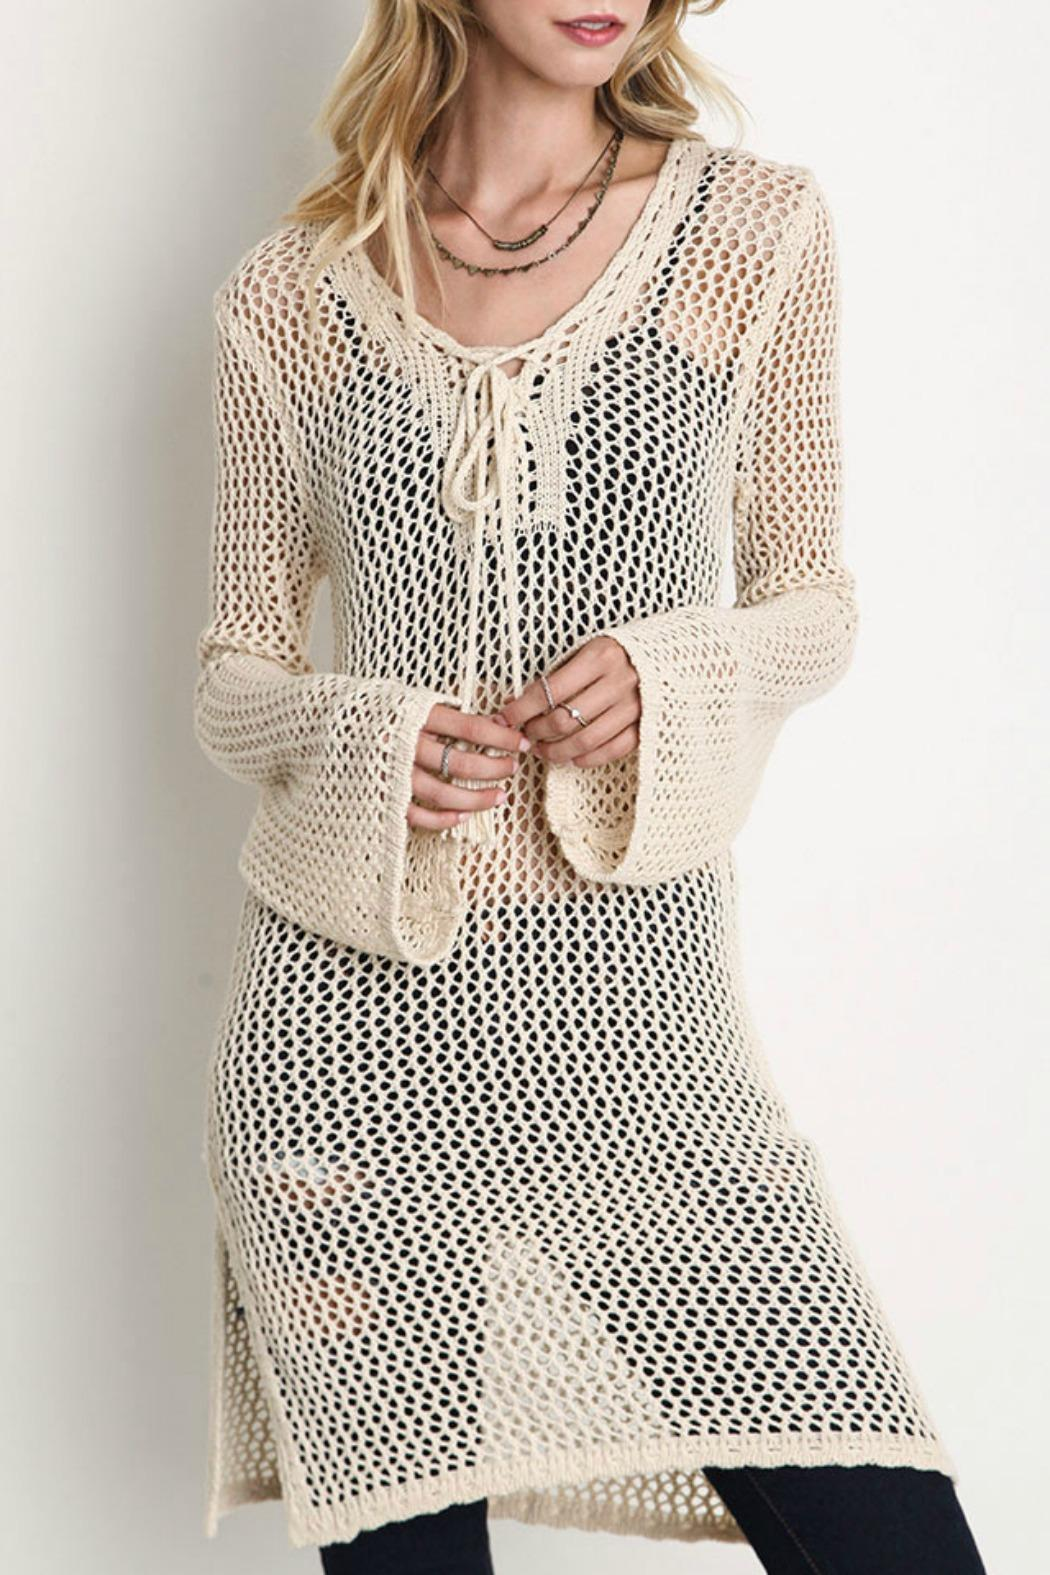 umgee usa sheer crochet tunic - main image deszpgf